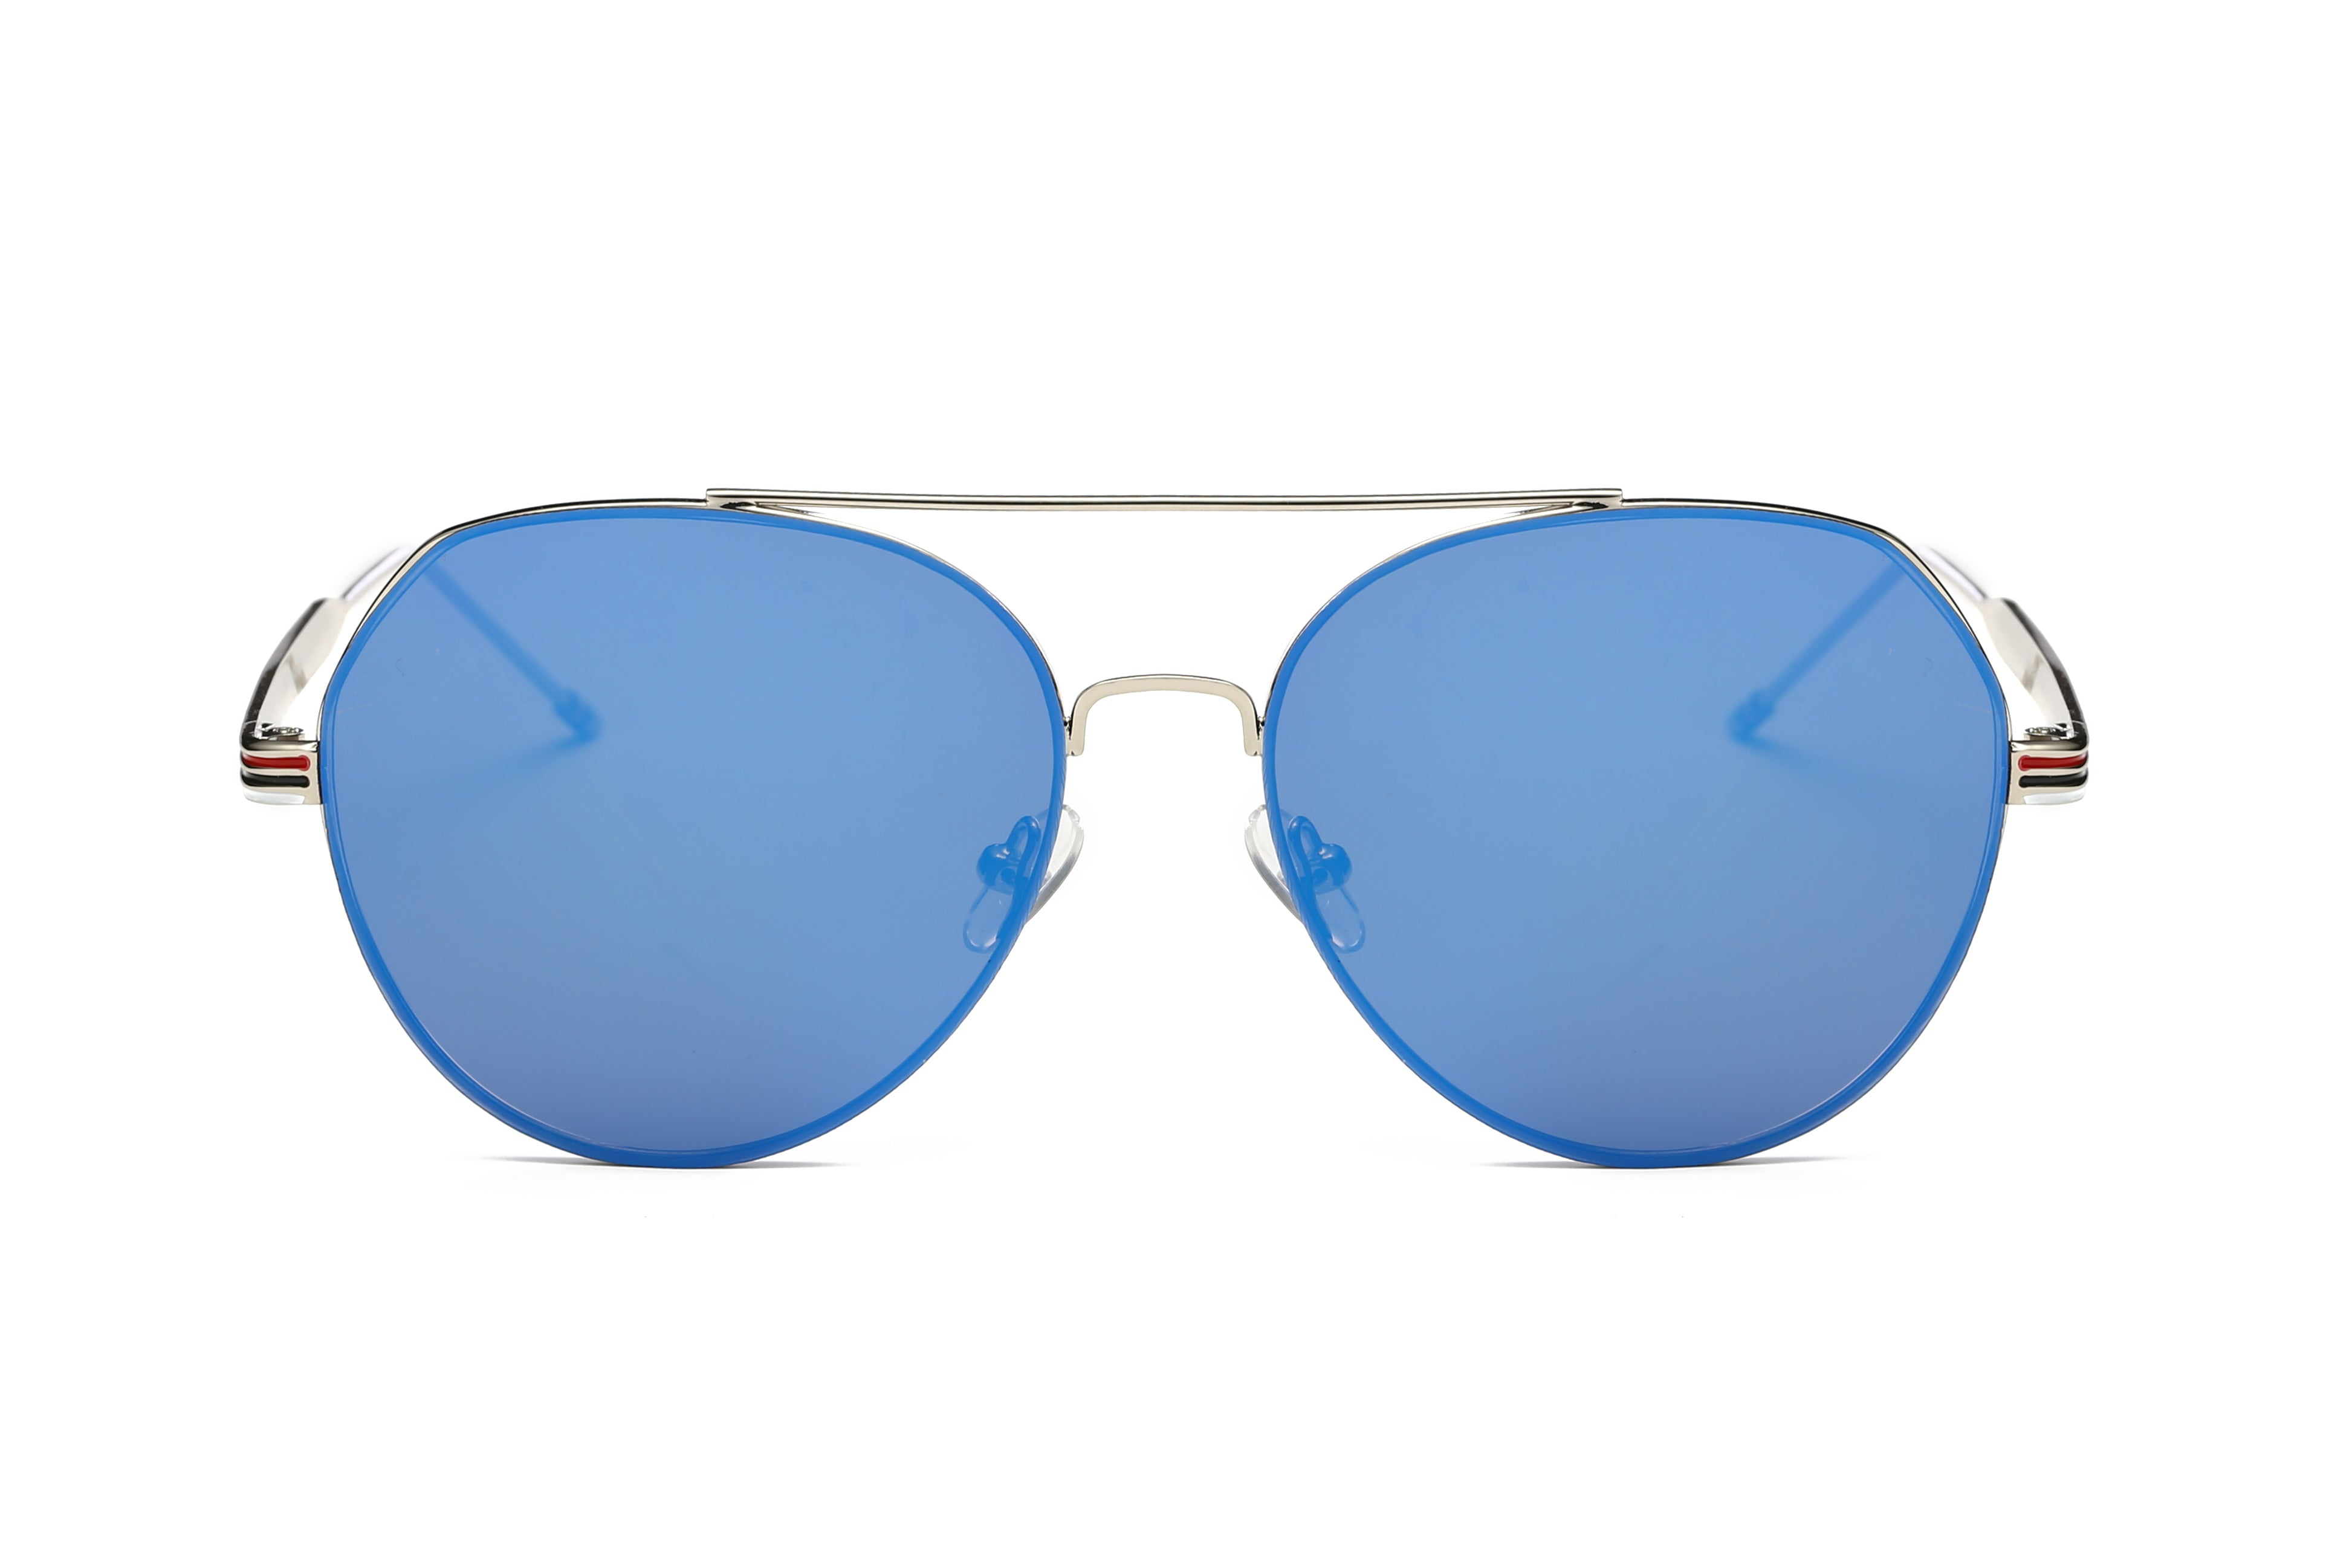 Classic Mirrored Aviator Fashion Sunglasses for Men and Women - Blue